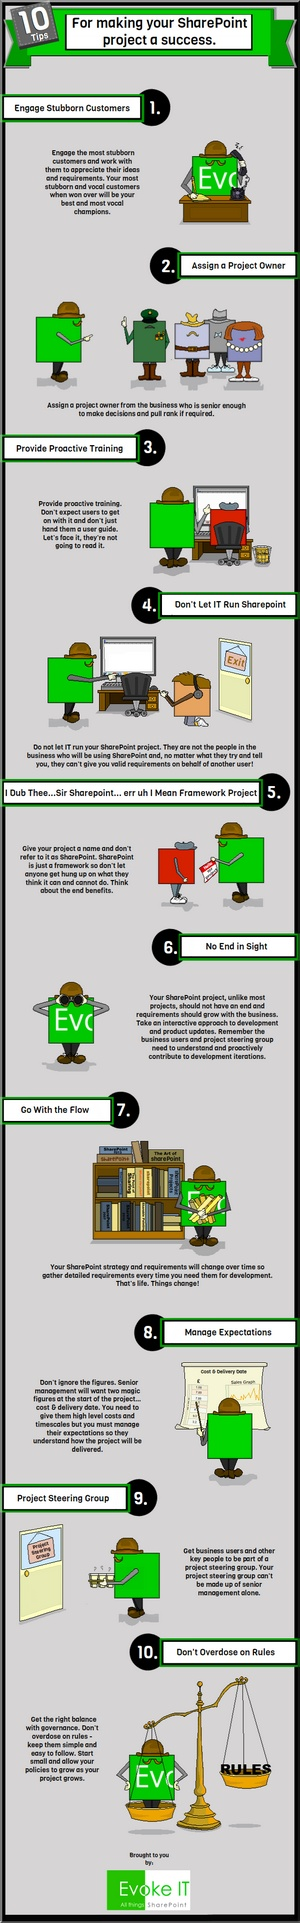 Infographic - How to Make Your Project a Success